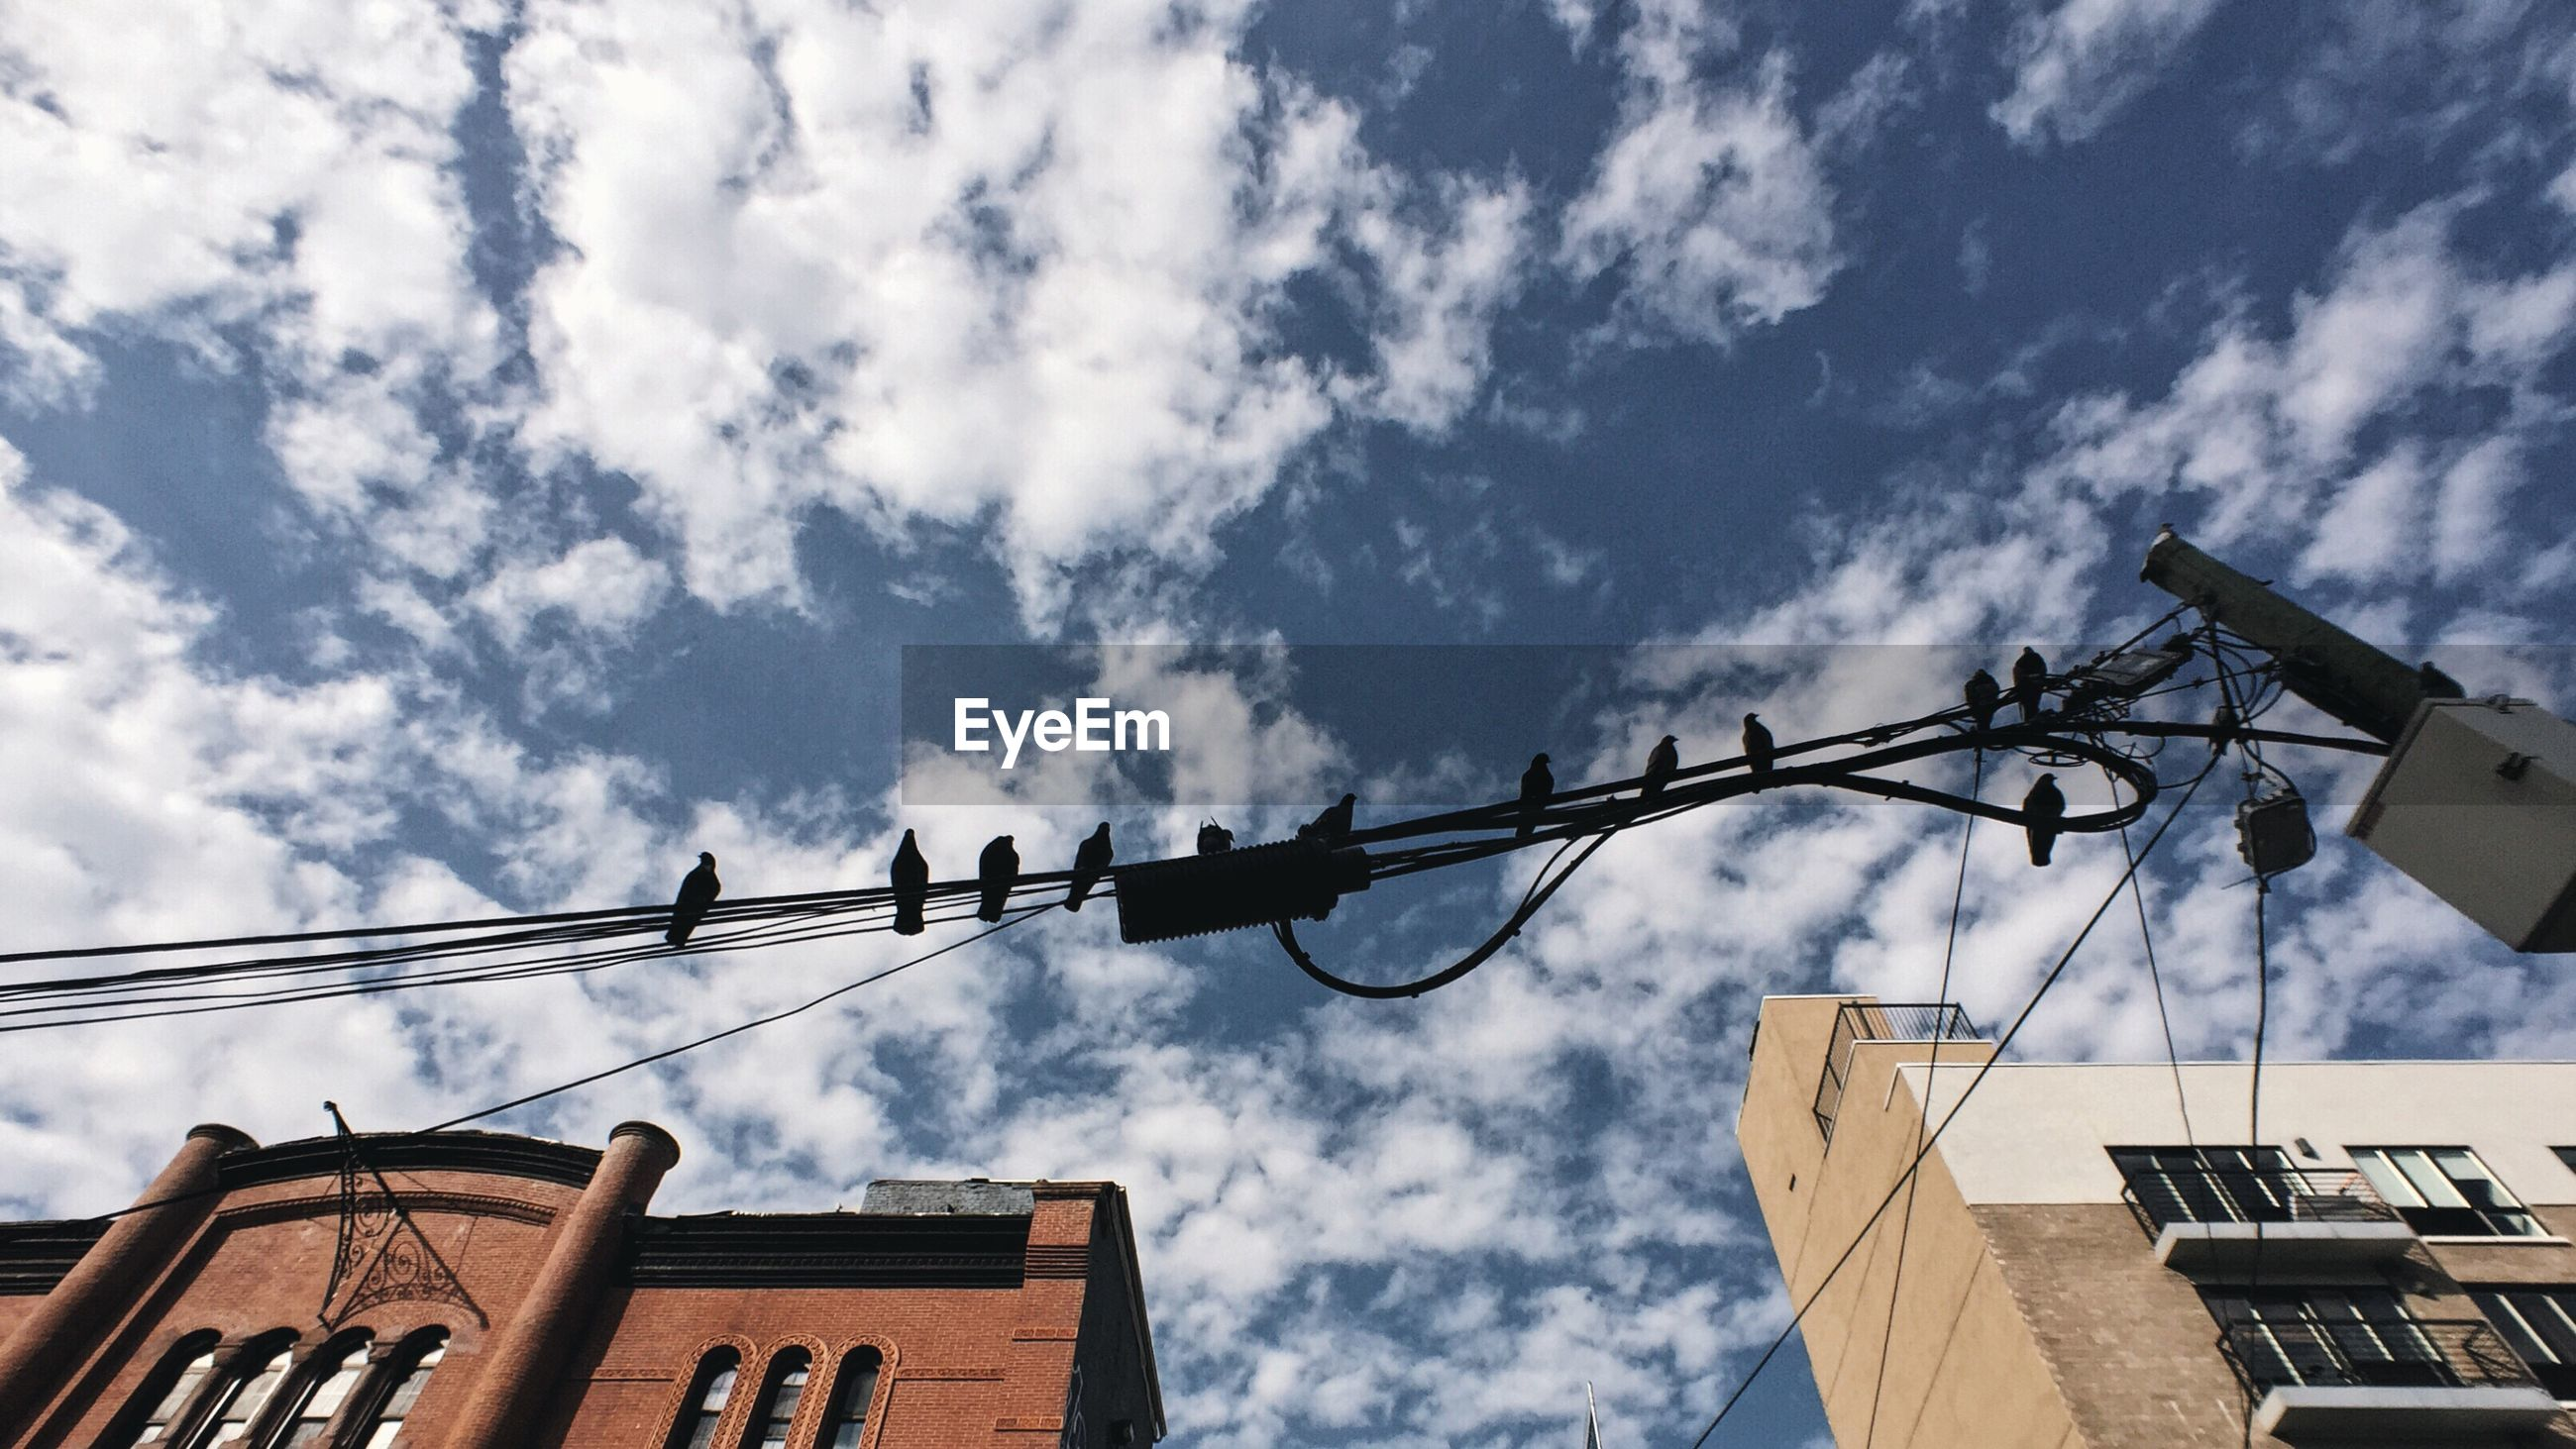 Low angle view of birds on power line against cloudy sky